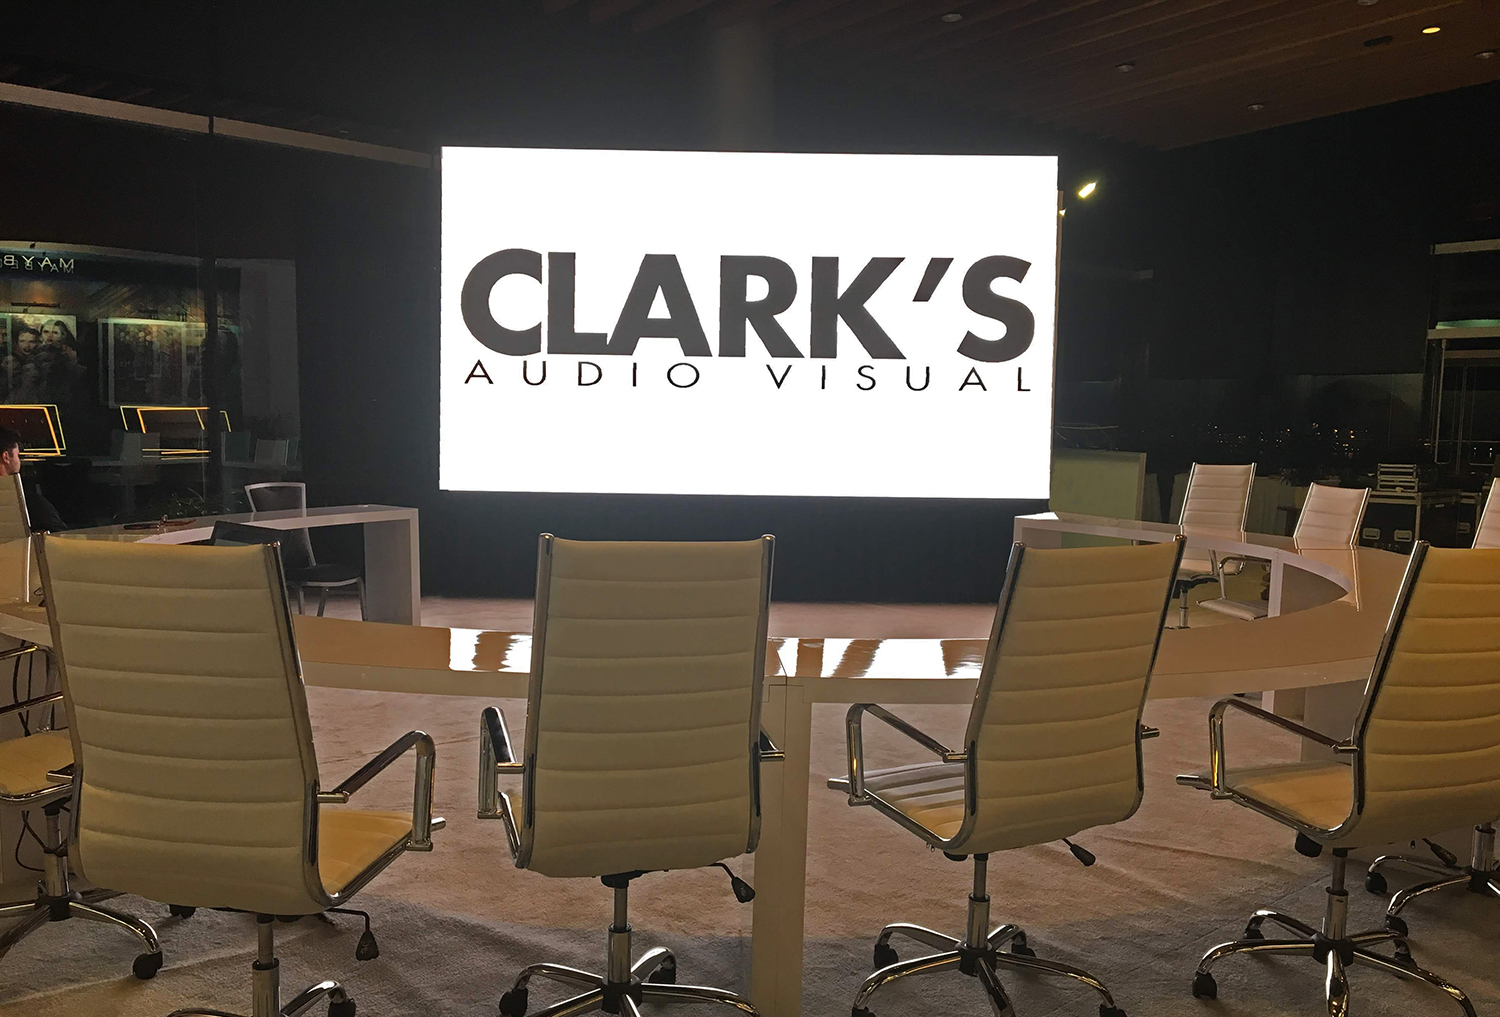 Clark's Audio Visual LED Wall Rentals